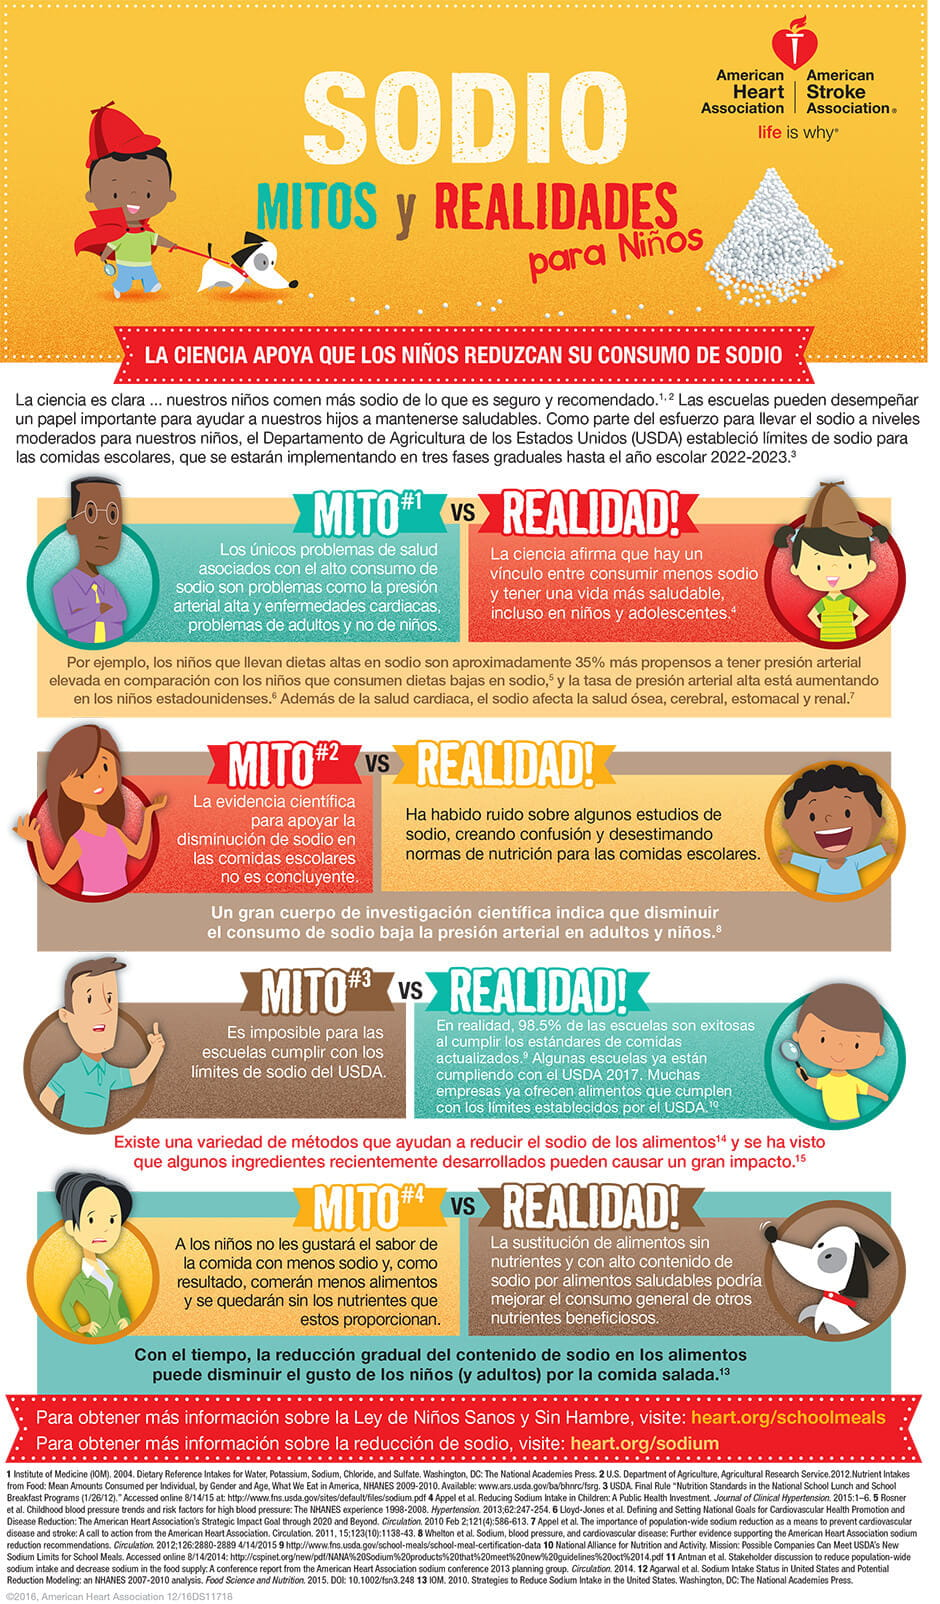 Sodium myths and facts for kids in Spanish